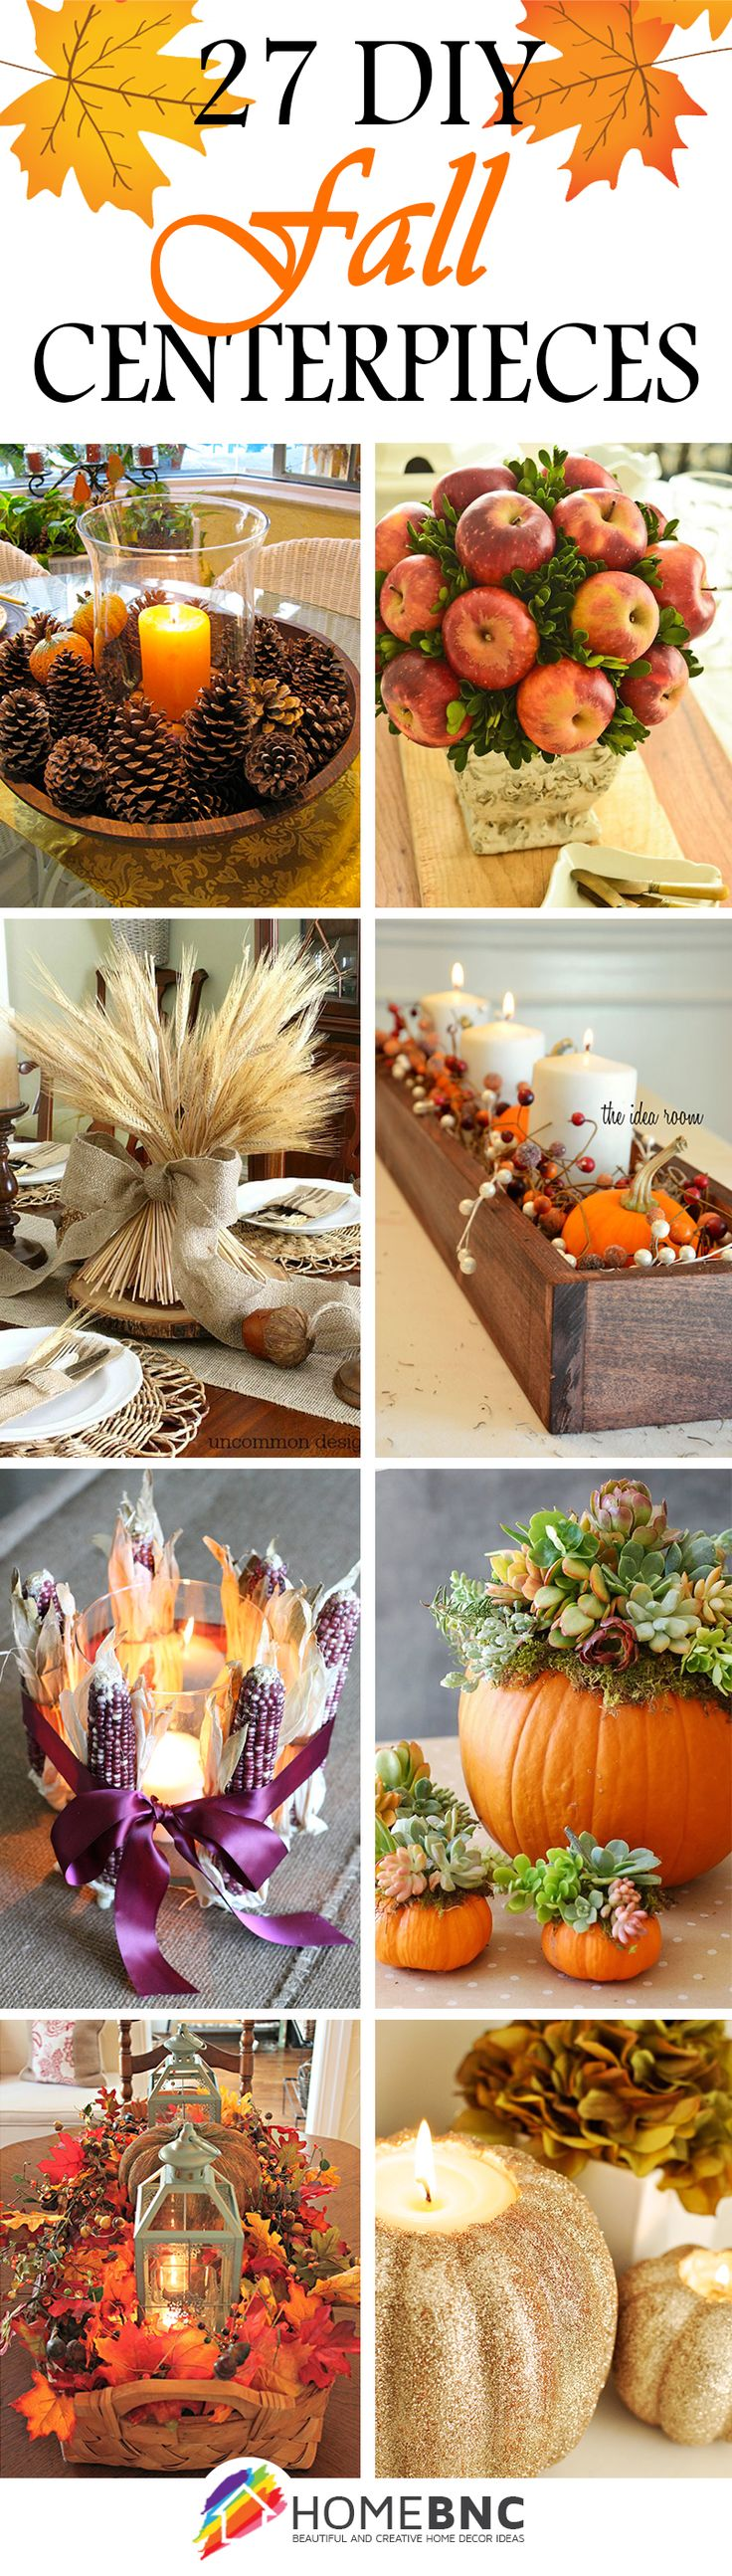 DIY Fall Centerpiece Decorations